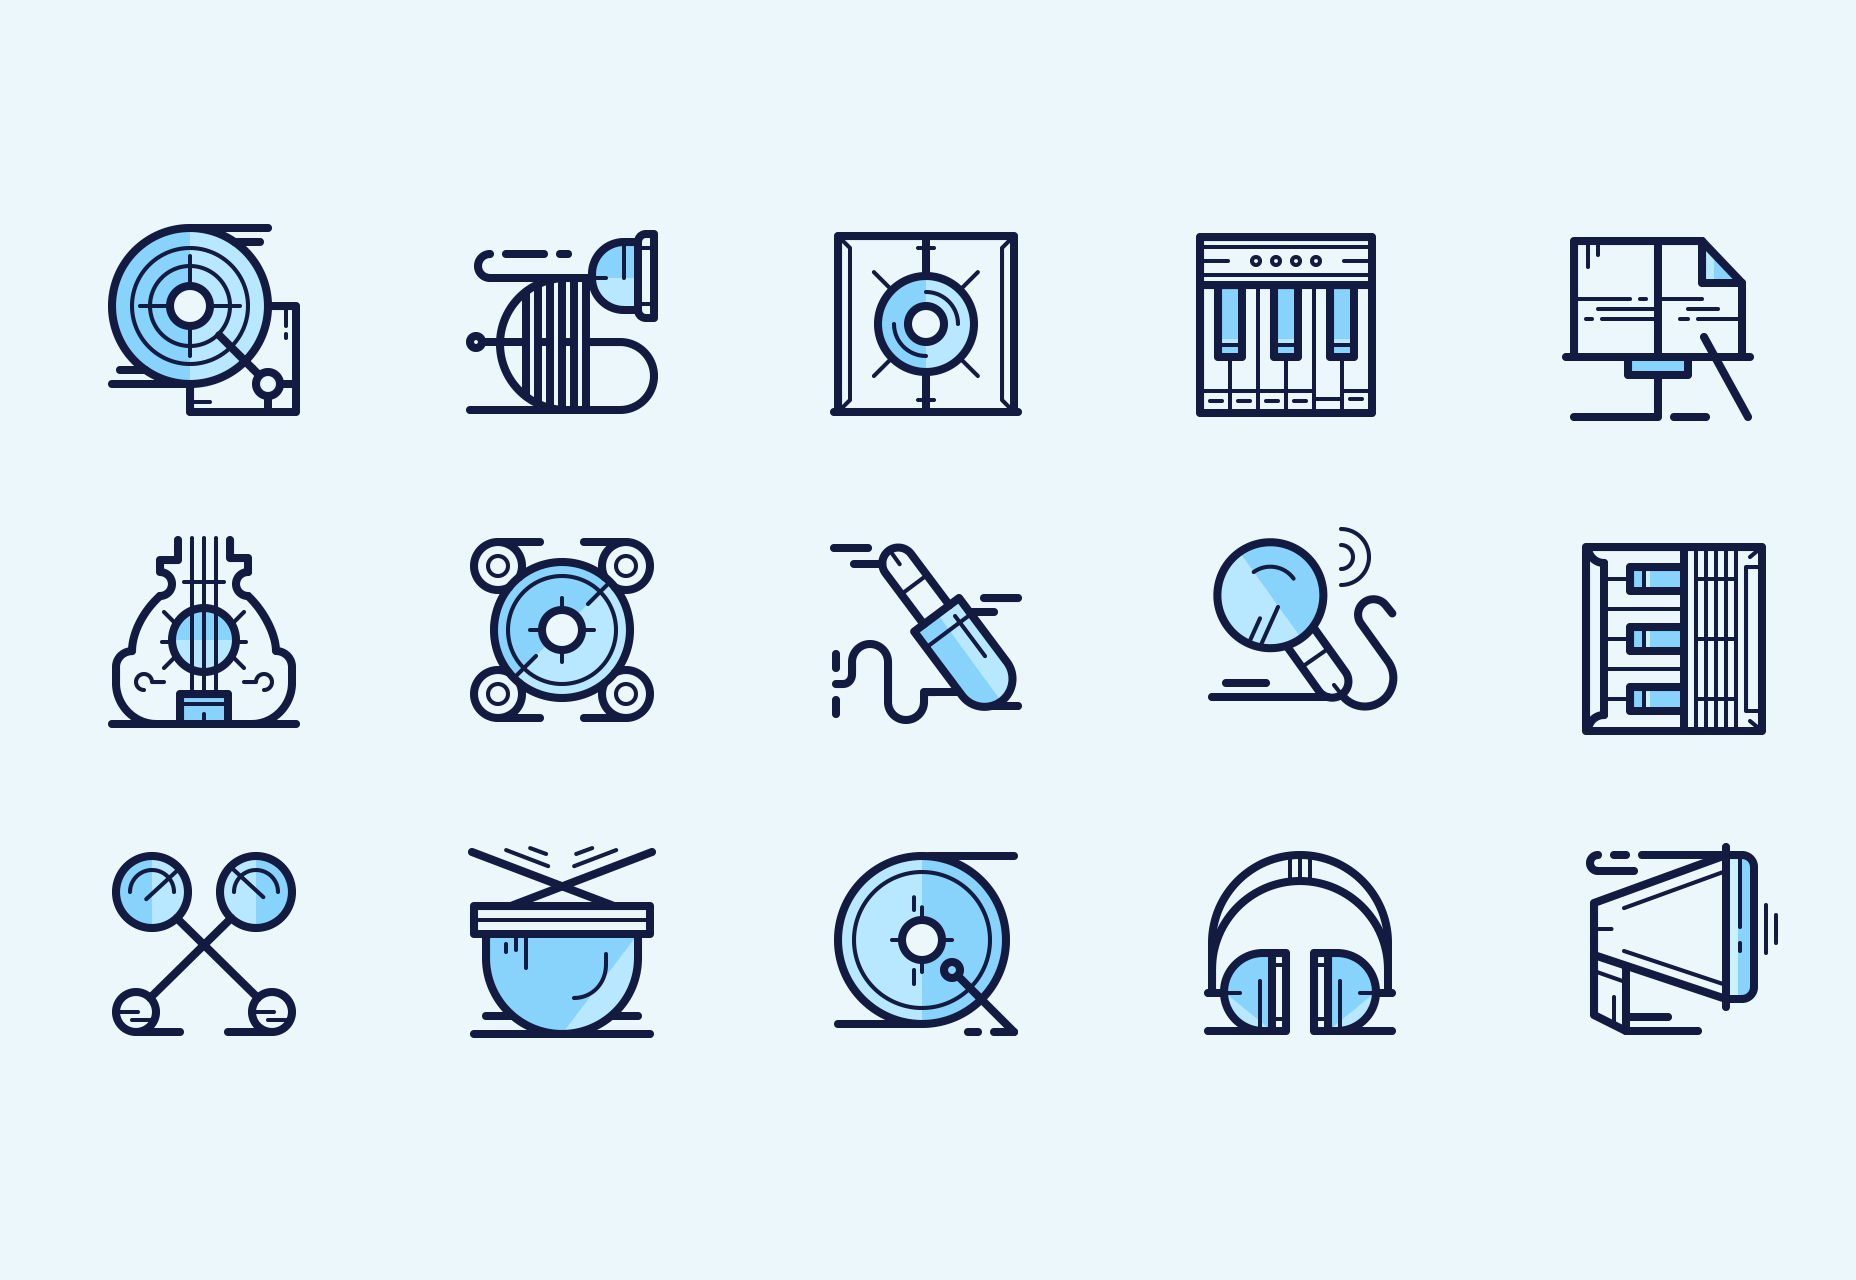 music-icons-multi-weight-line-style-icons